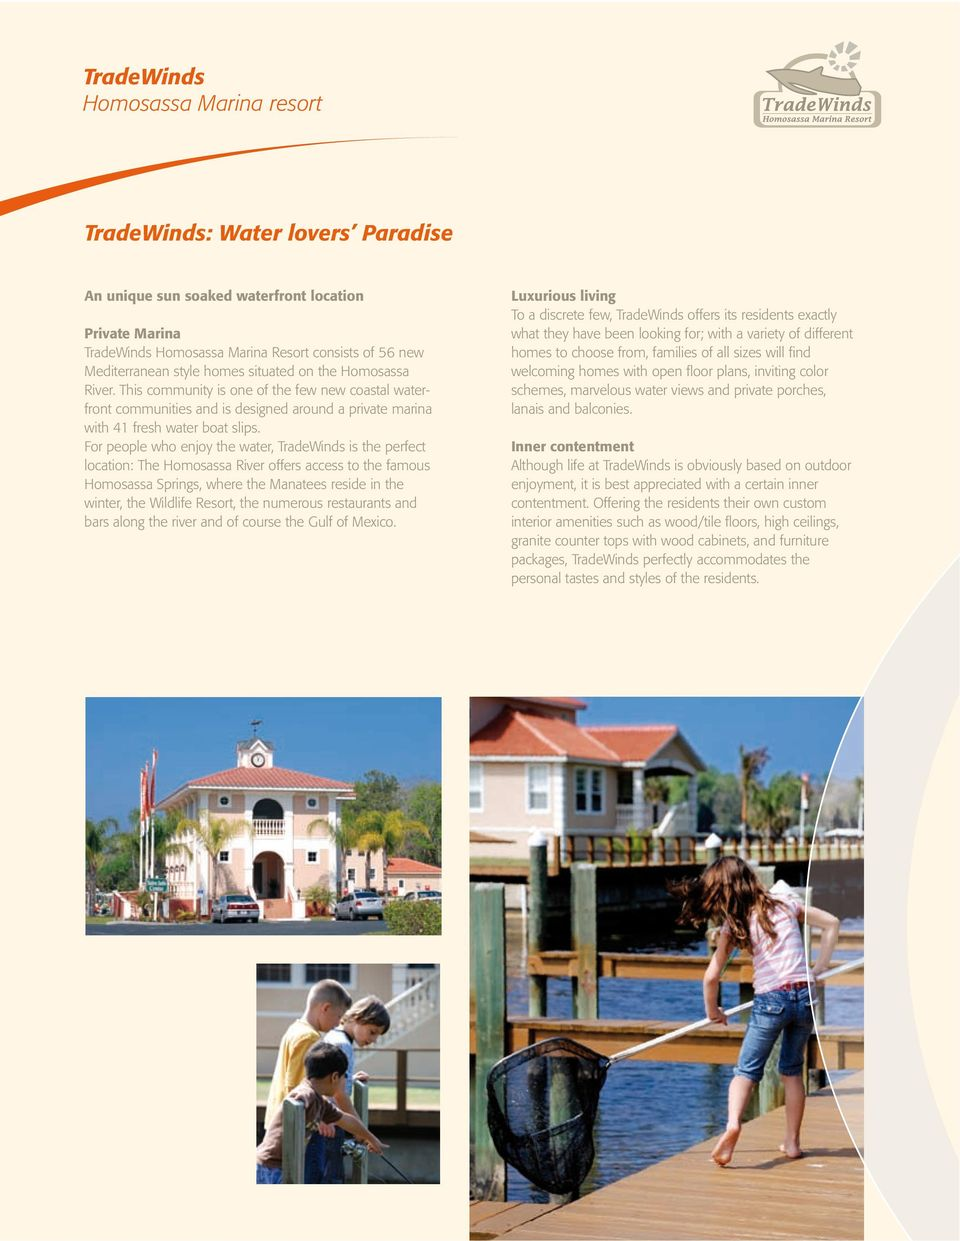 For people who enjoy the water, TradeWinds is the perfect location: The Homosassa River offers access to the famous Homosassa Springs, where the Manatees reside in the winter, the Wildlife Resort,